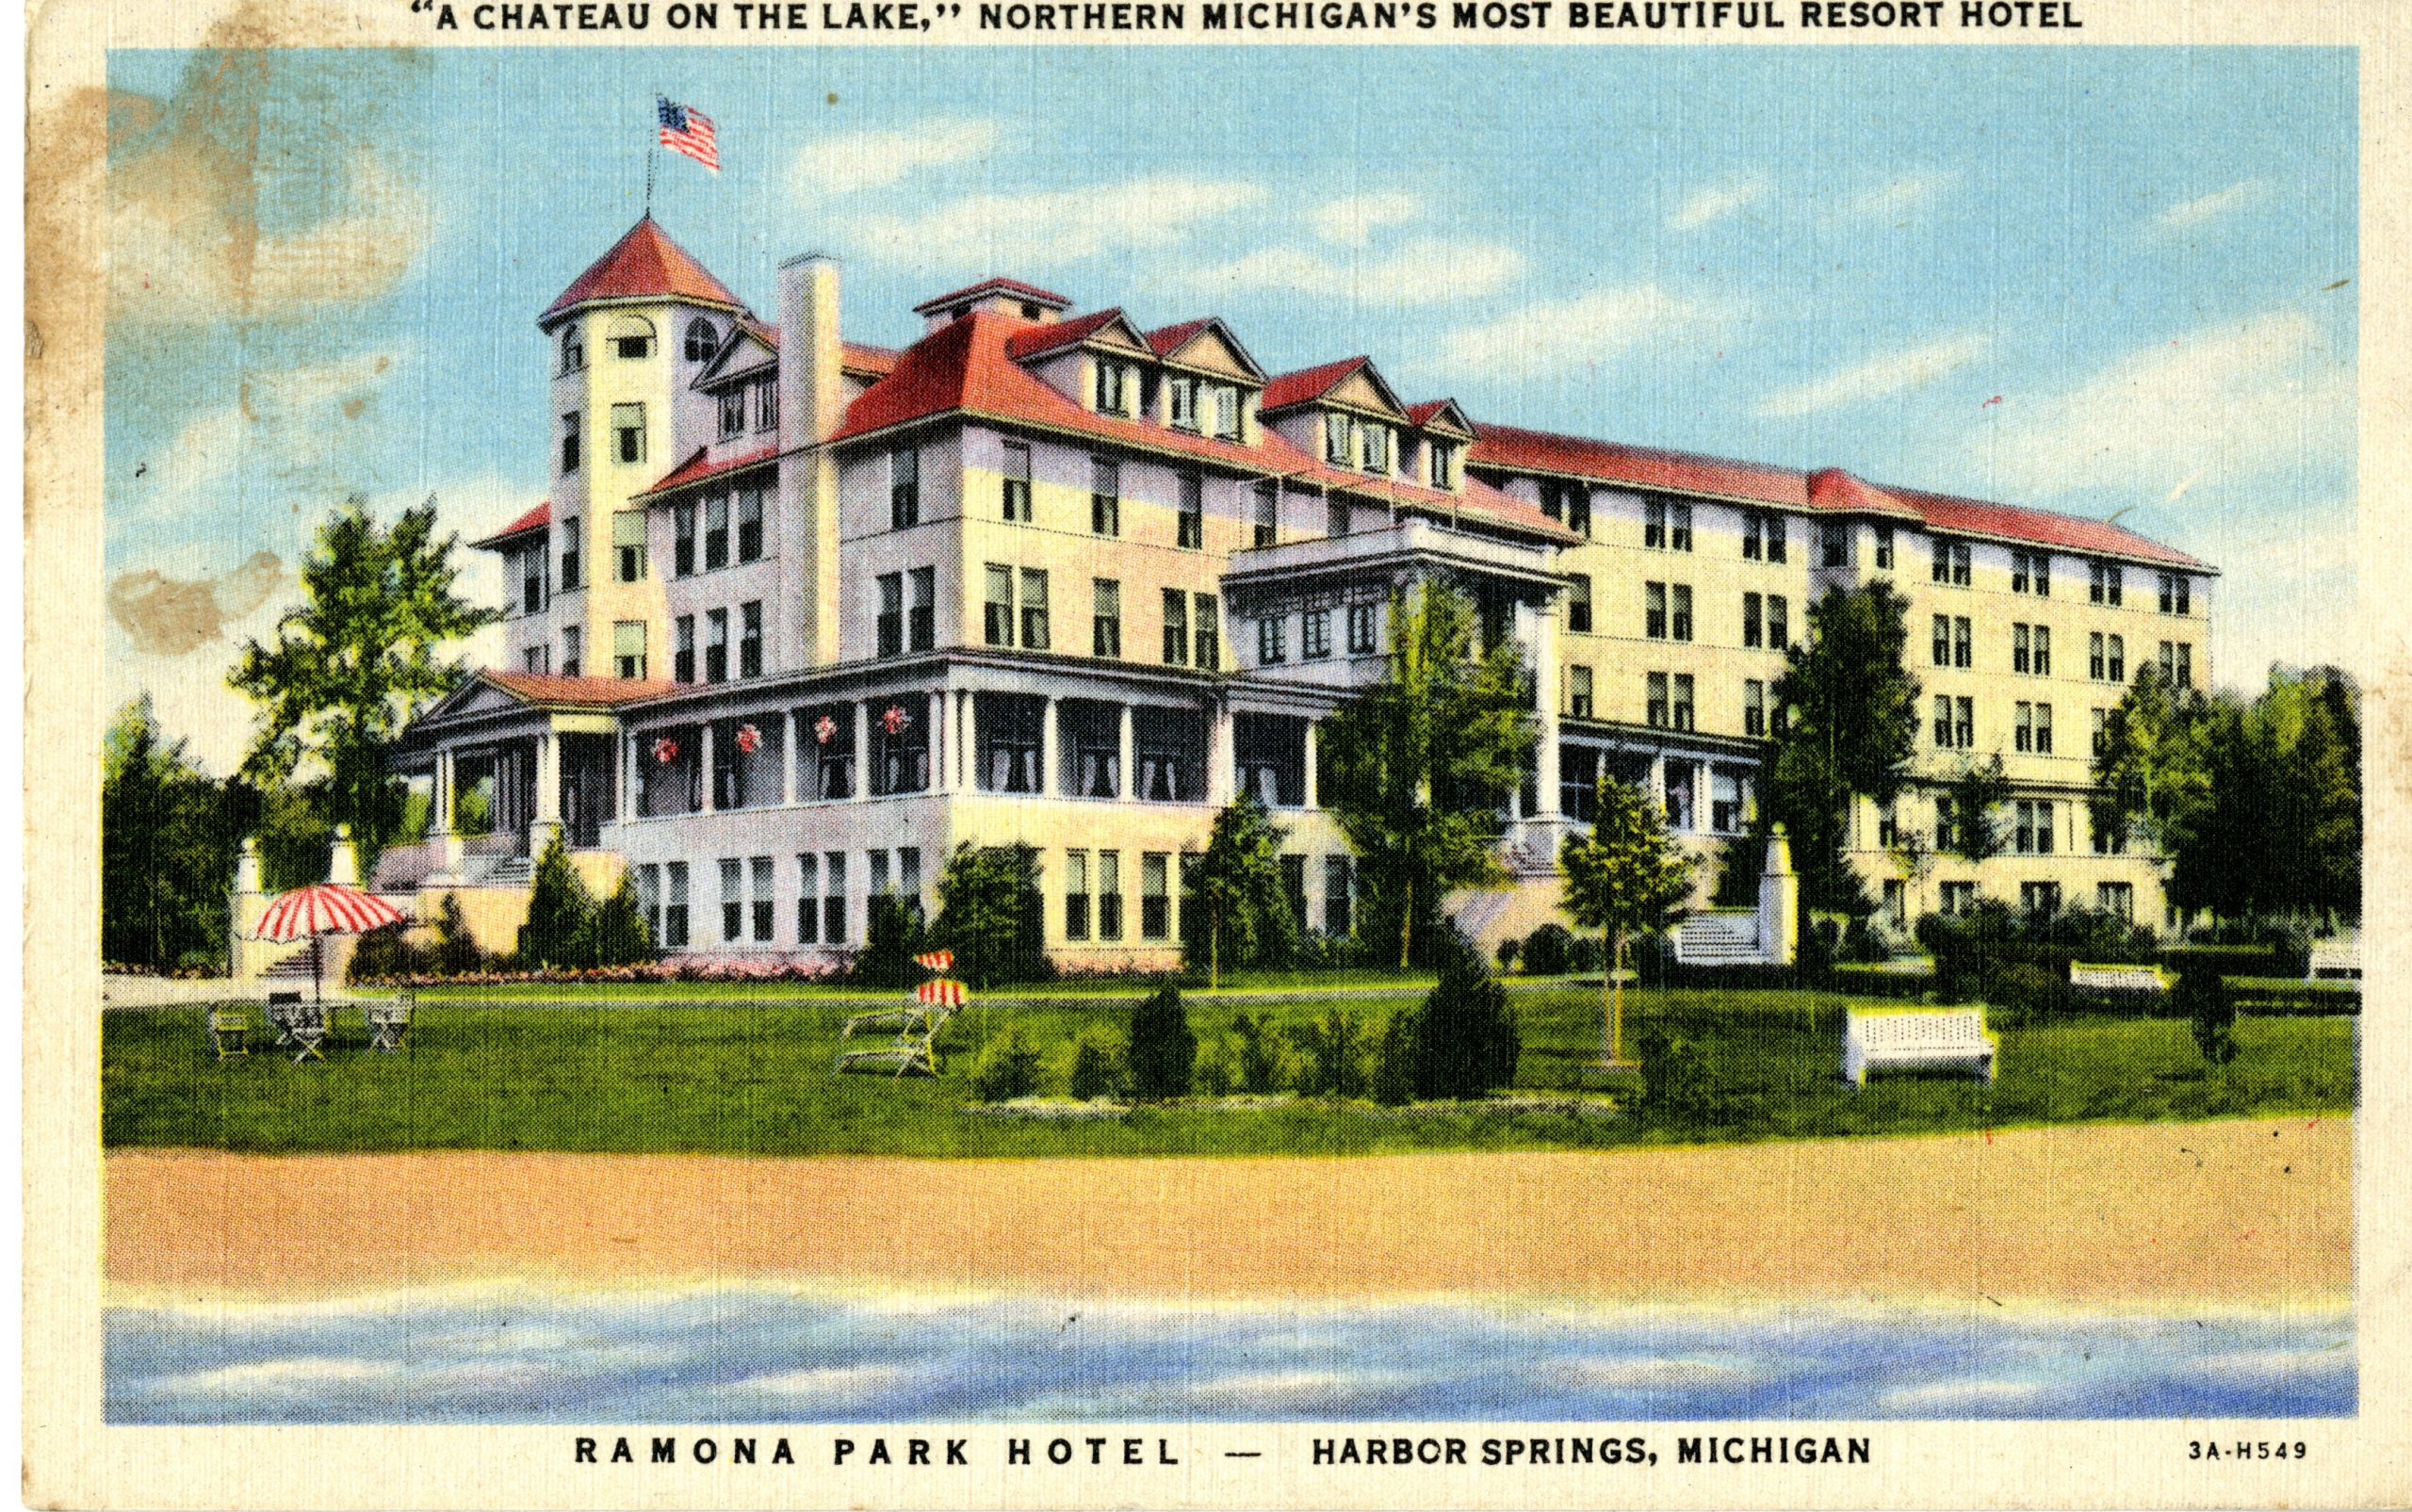 Luncheon Lecture - Historic Hotels with Tom Graham